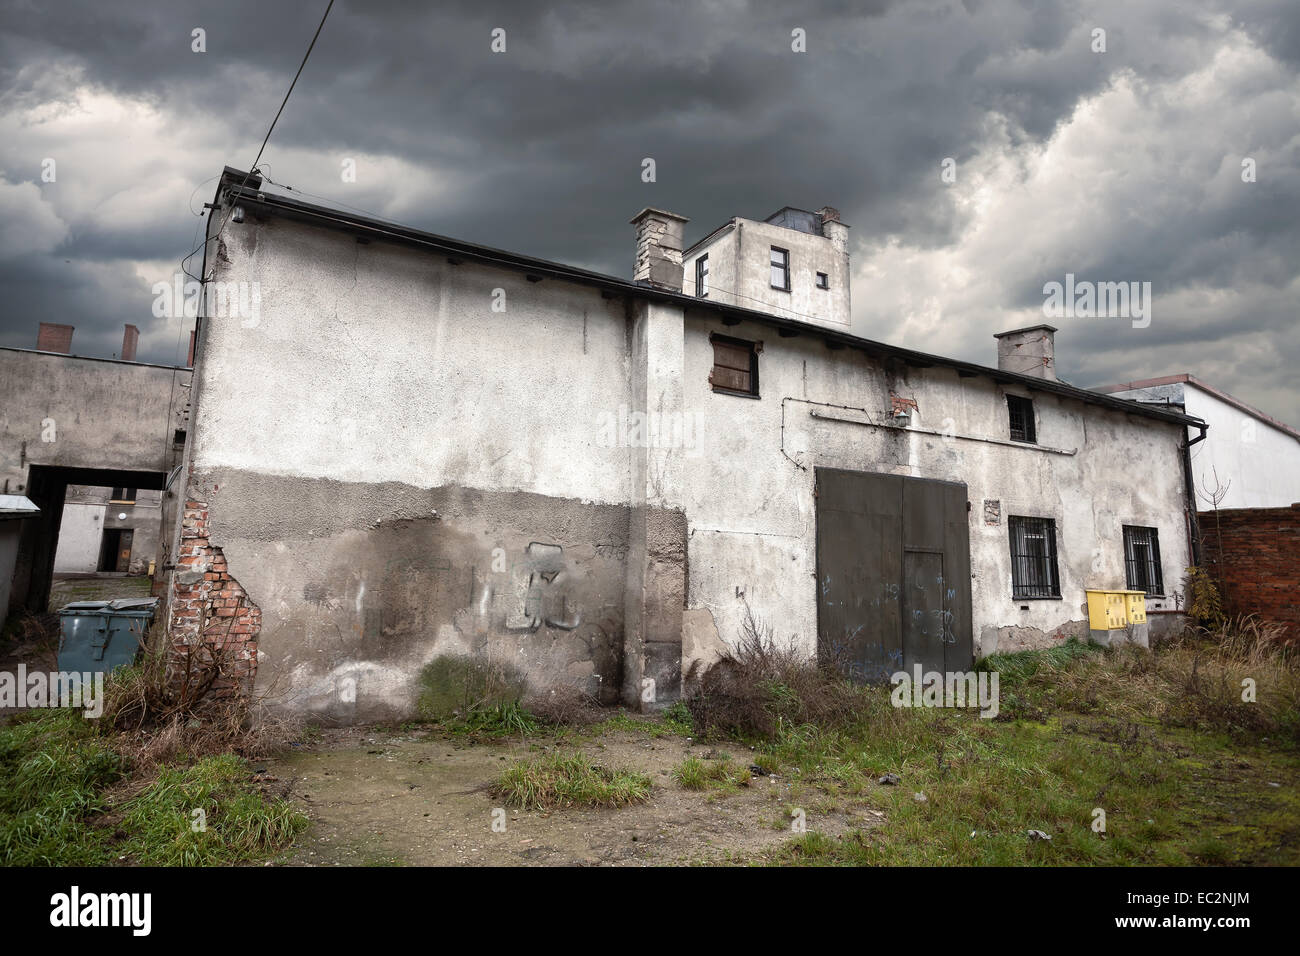 Sullen abandoned warehouse with stormy sky. - Stock Image